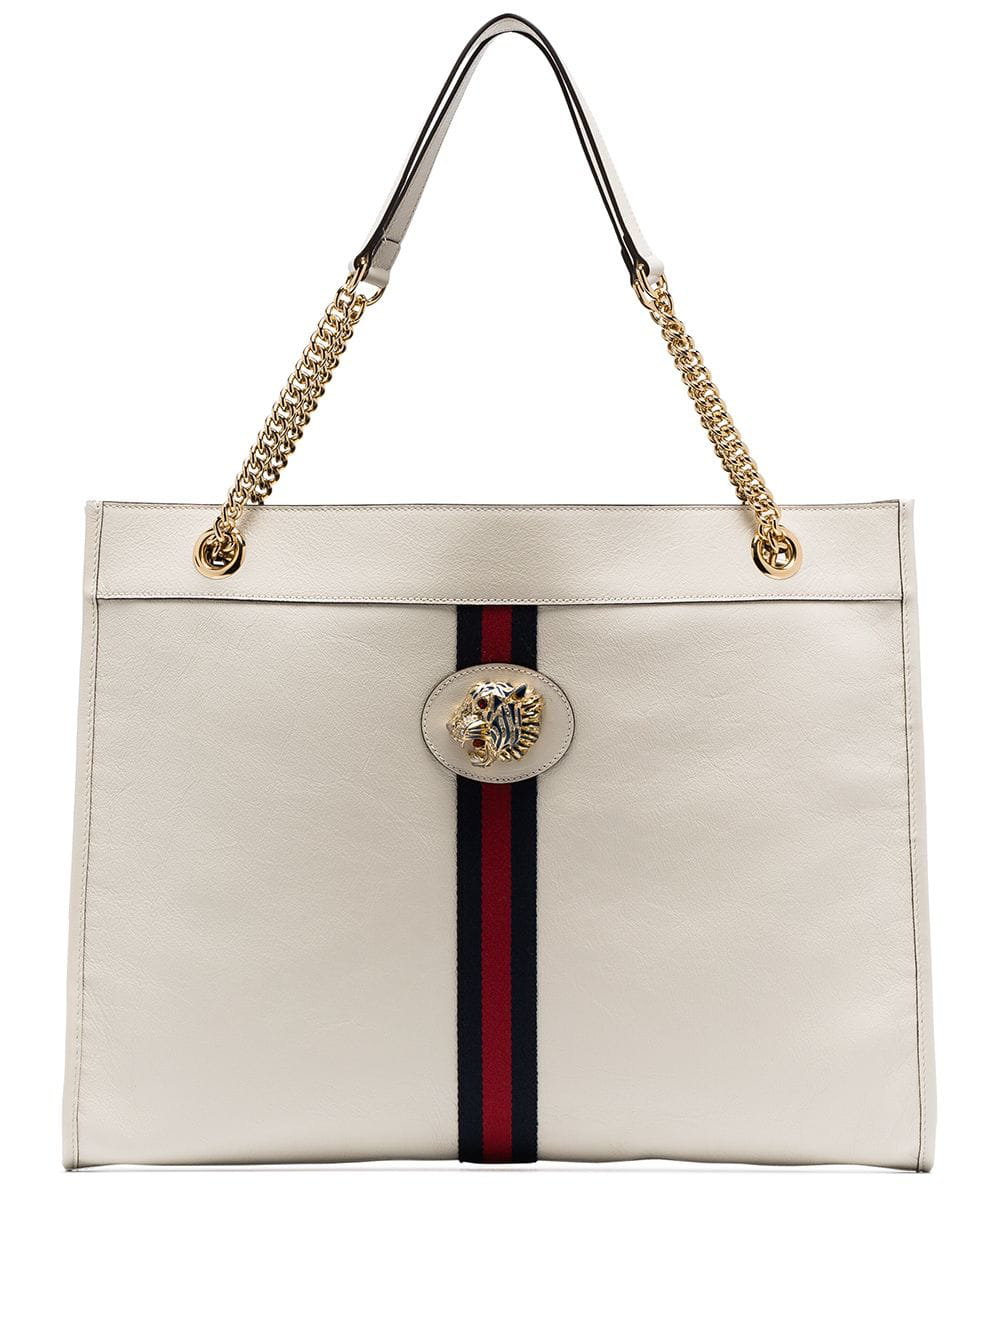 cb05ef18f71 Gucci White Rajah Tiger-Embellished Leather Tote Bag - Farfetch In Neutrals